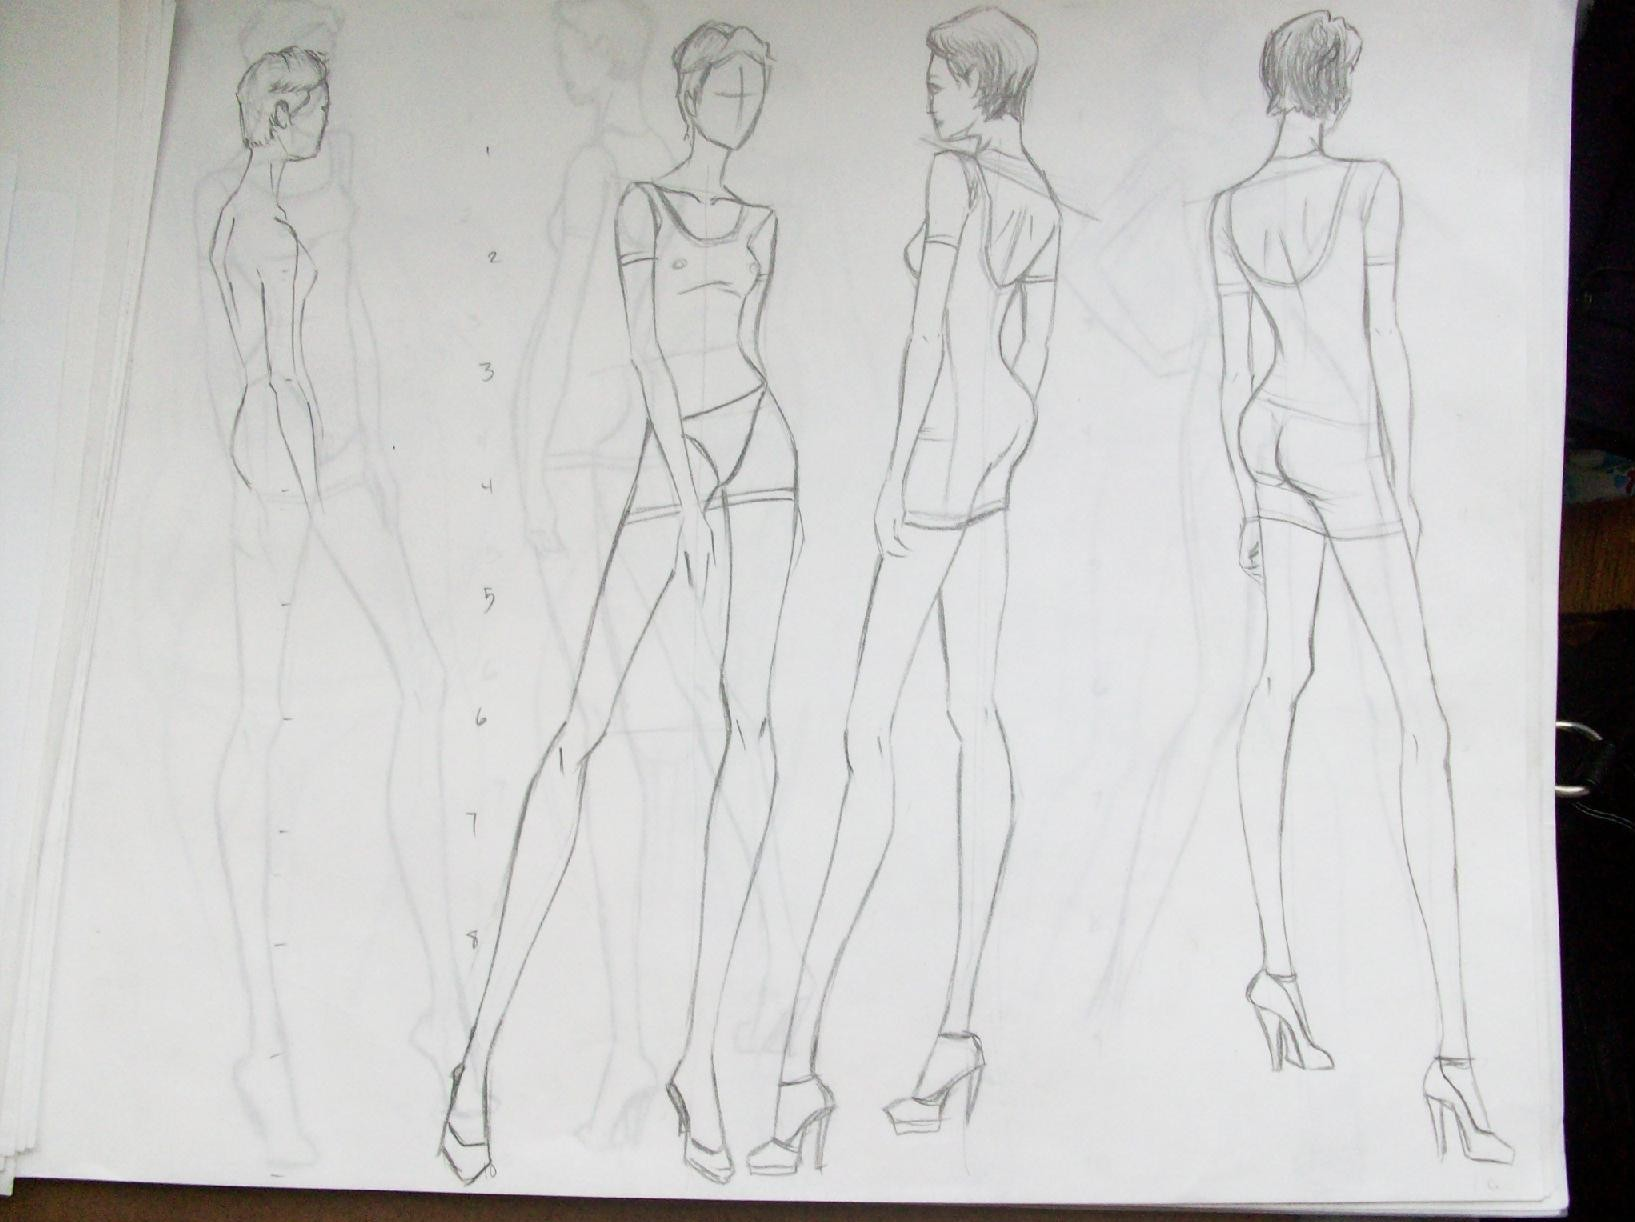 Glamorous Fashion Sketches and Illustrations: Best 50 67